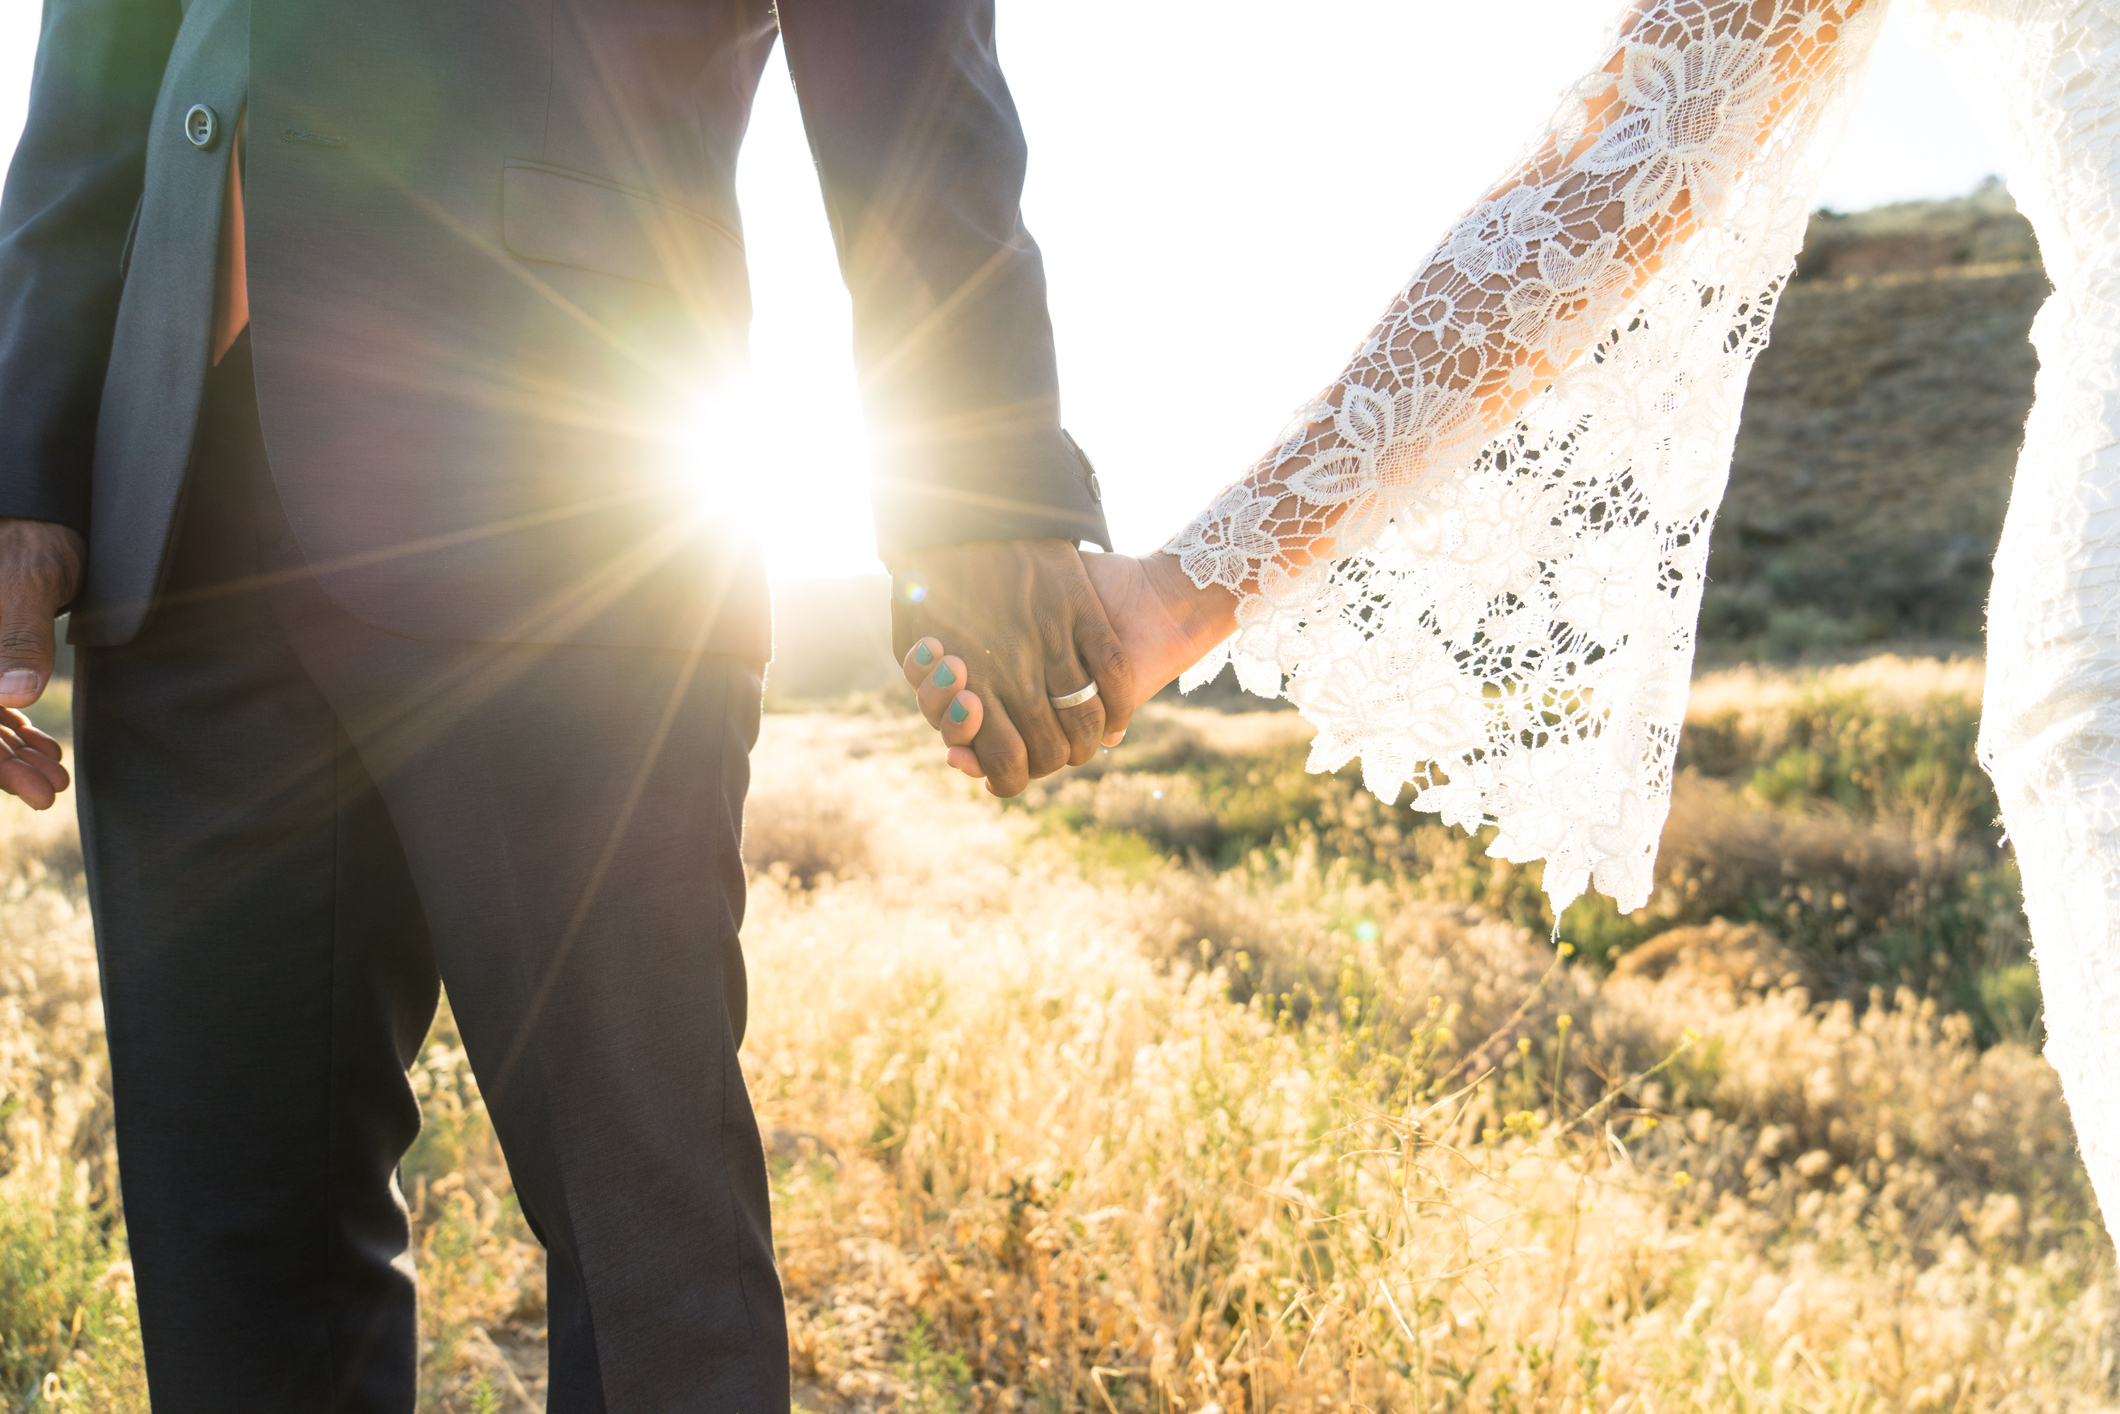 Have you found the person that you want to spend the rest of your life with? - Congratulations! As you prepare for your wedding, a great way to learn more about yourself, your fiancée and be best prepared for the future is through premarital counseling. Premarital counseling can take many forms, however, what I generally recommend is 4-6 hour long sessions accompanied by the Prepare/Enrich Program. You may have heard of Prepare/Enrich before. It's an online survey that takes only 30-45 minutes to complete.Some couples are getting married for the first time and wondering about what they might expect in the future in terms of their relationship, communication, and family dynamics. Other couples may be marrying for the second or third time, may have children from prior relationships.Typically, premarital counseling involves both you and your partner taking the survey at your leisure. We will then meet together for a few sessions and discuss your unique strengths, as well as areas of potential growth for your relationship. You will receive information on personality traits, communication, family backgrounds, and financial values in order to resolve conflicts and reduce stress. These discussions can form the foundation for communication in your marriage.You may receive a discount on your marriage license through the state of Florida based upon attending premarital counseling. If you want to take advantage of this discount- please let me know.Prepare/Enrich has been used over the past 30 years with over 3 million couples-premarital and married. It can be specialized to a number of Christian denominations and spiritual backgrounds.Please feel free to contact me and we can discuss options for you and your partner!